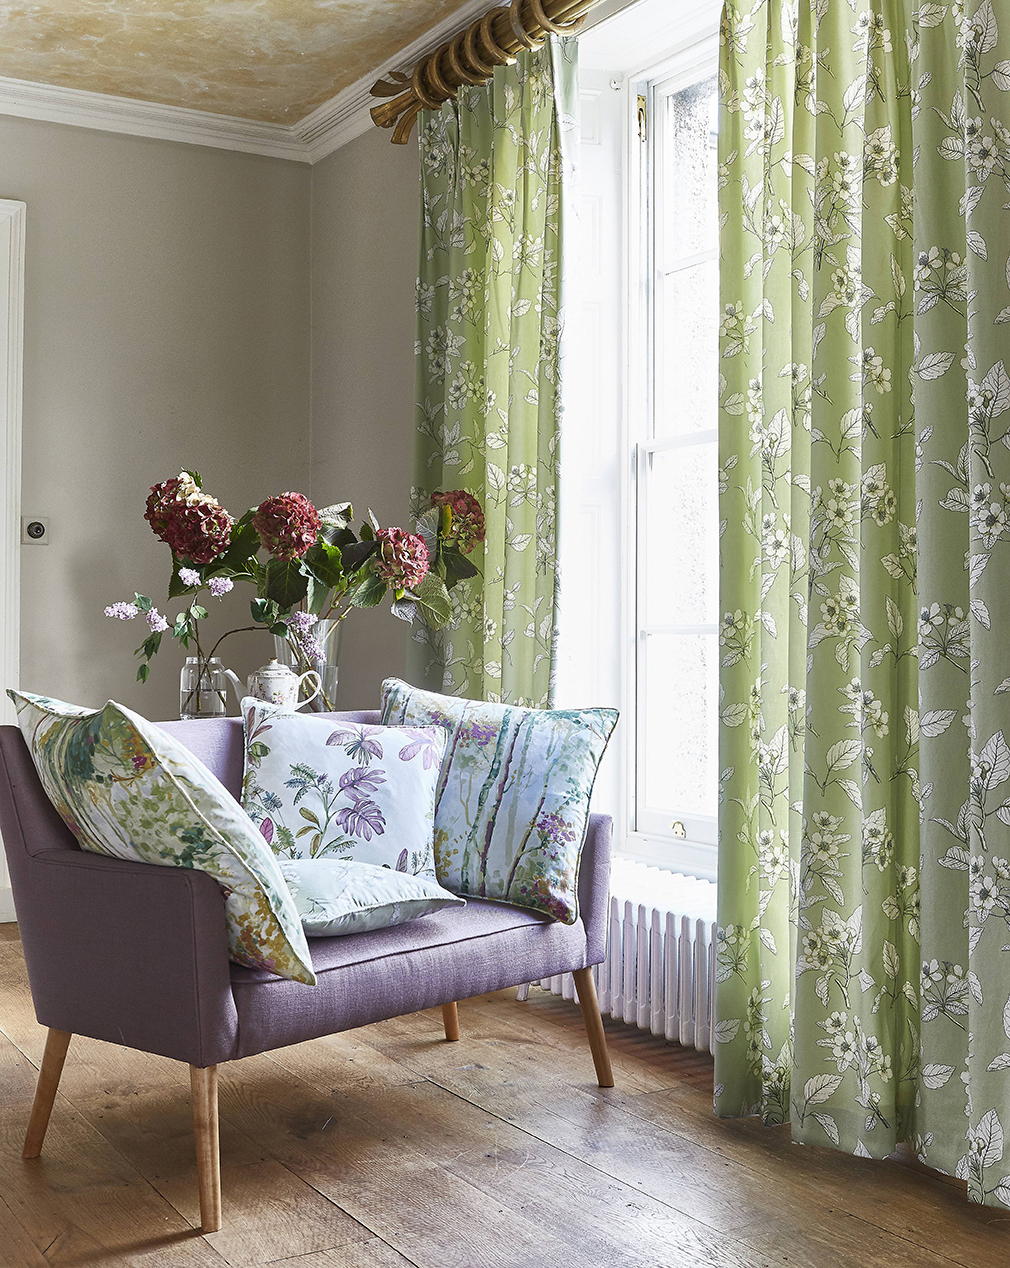 Bespoke Window Dressing And Furnishings For Homes And Business